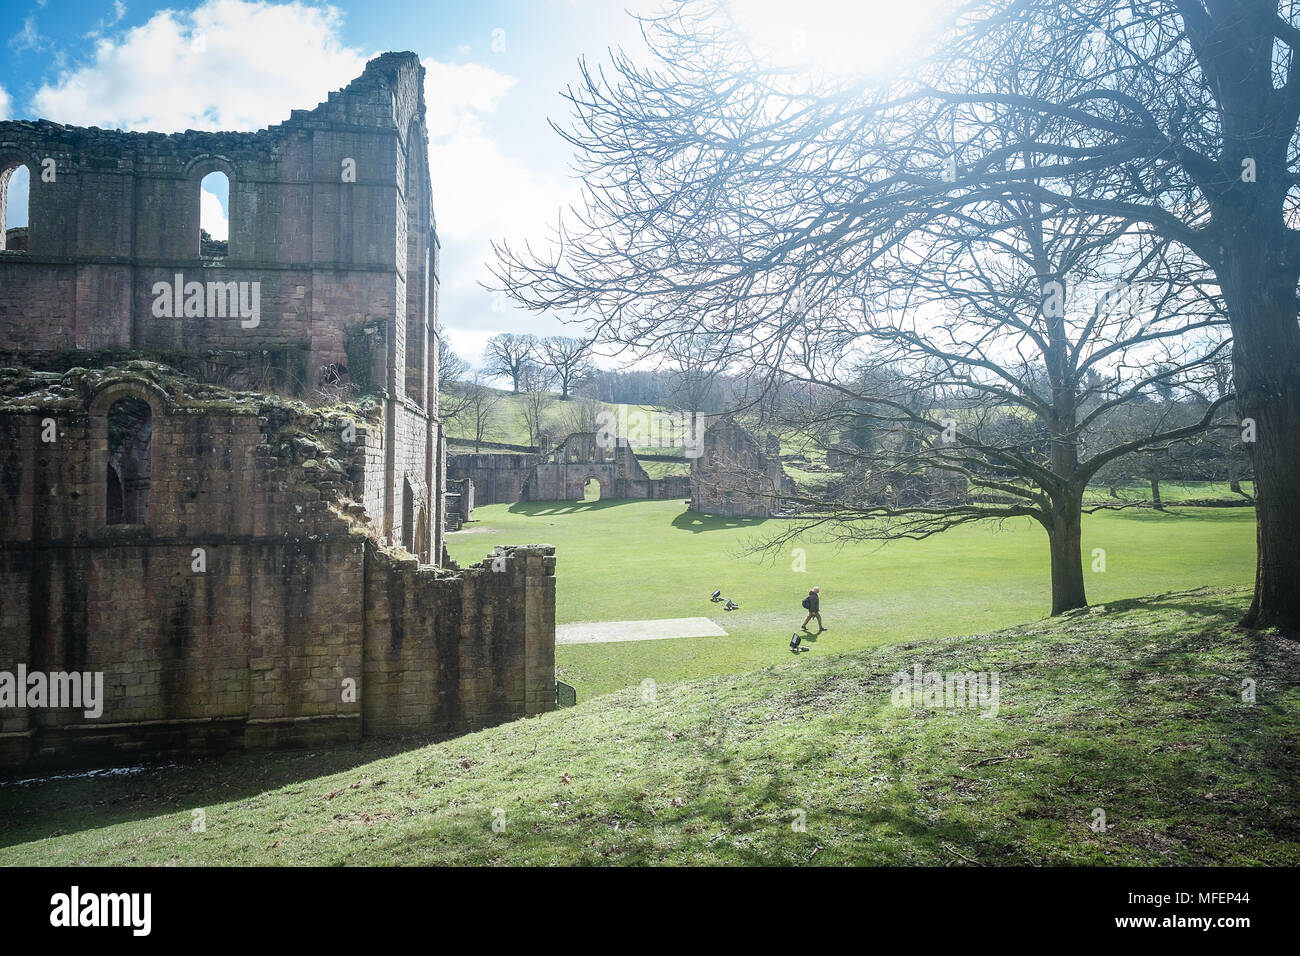 Fountains Abbey, National Trust property, Studley Royal, North Yorkshire - Stock Image